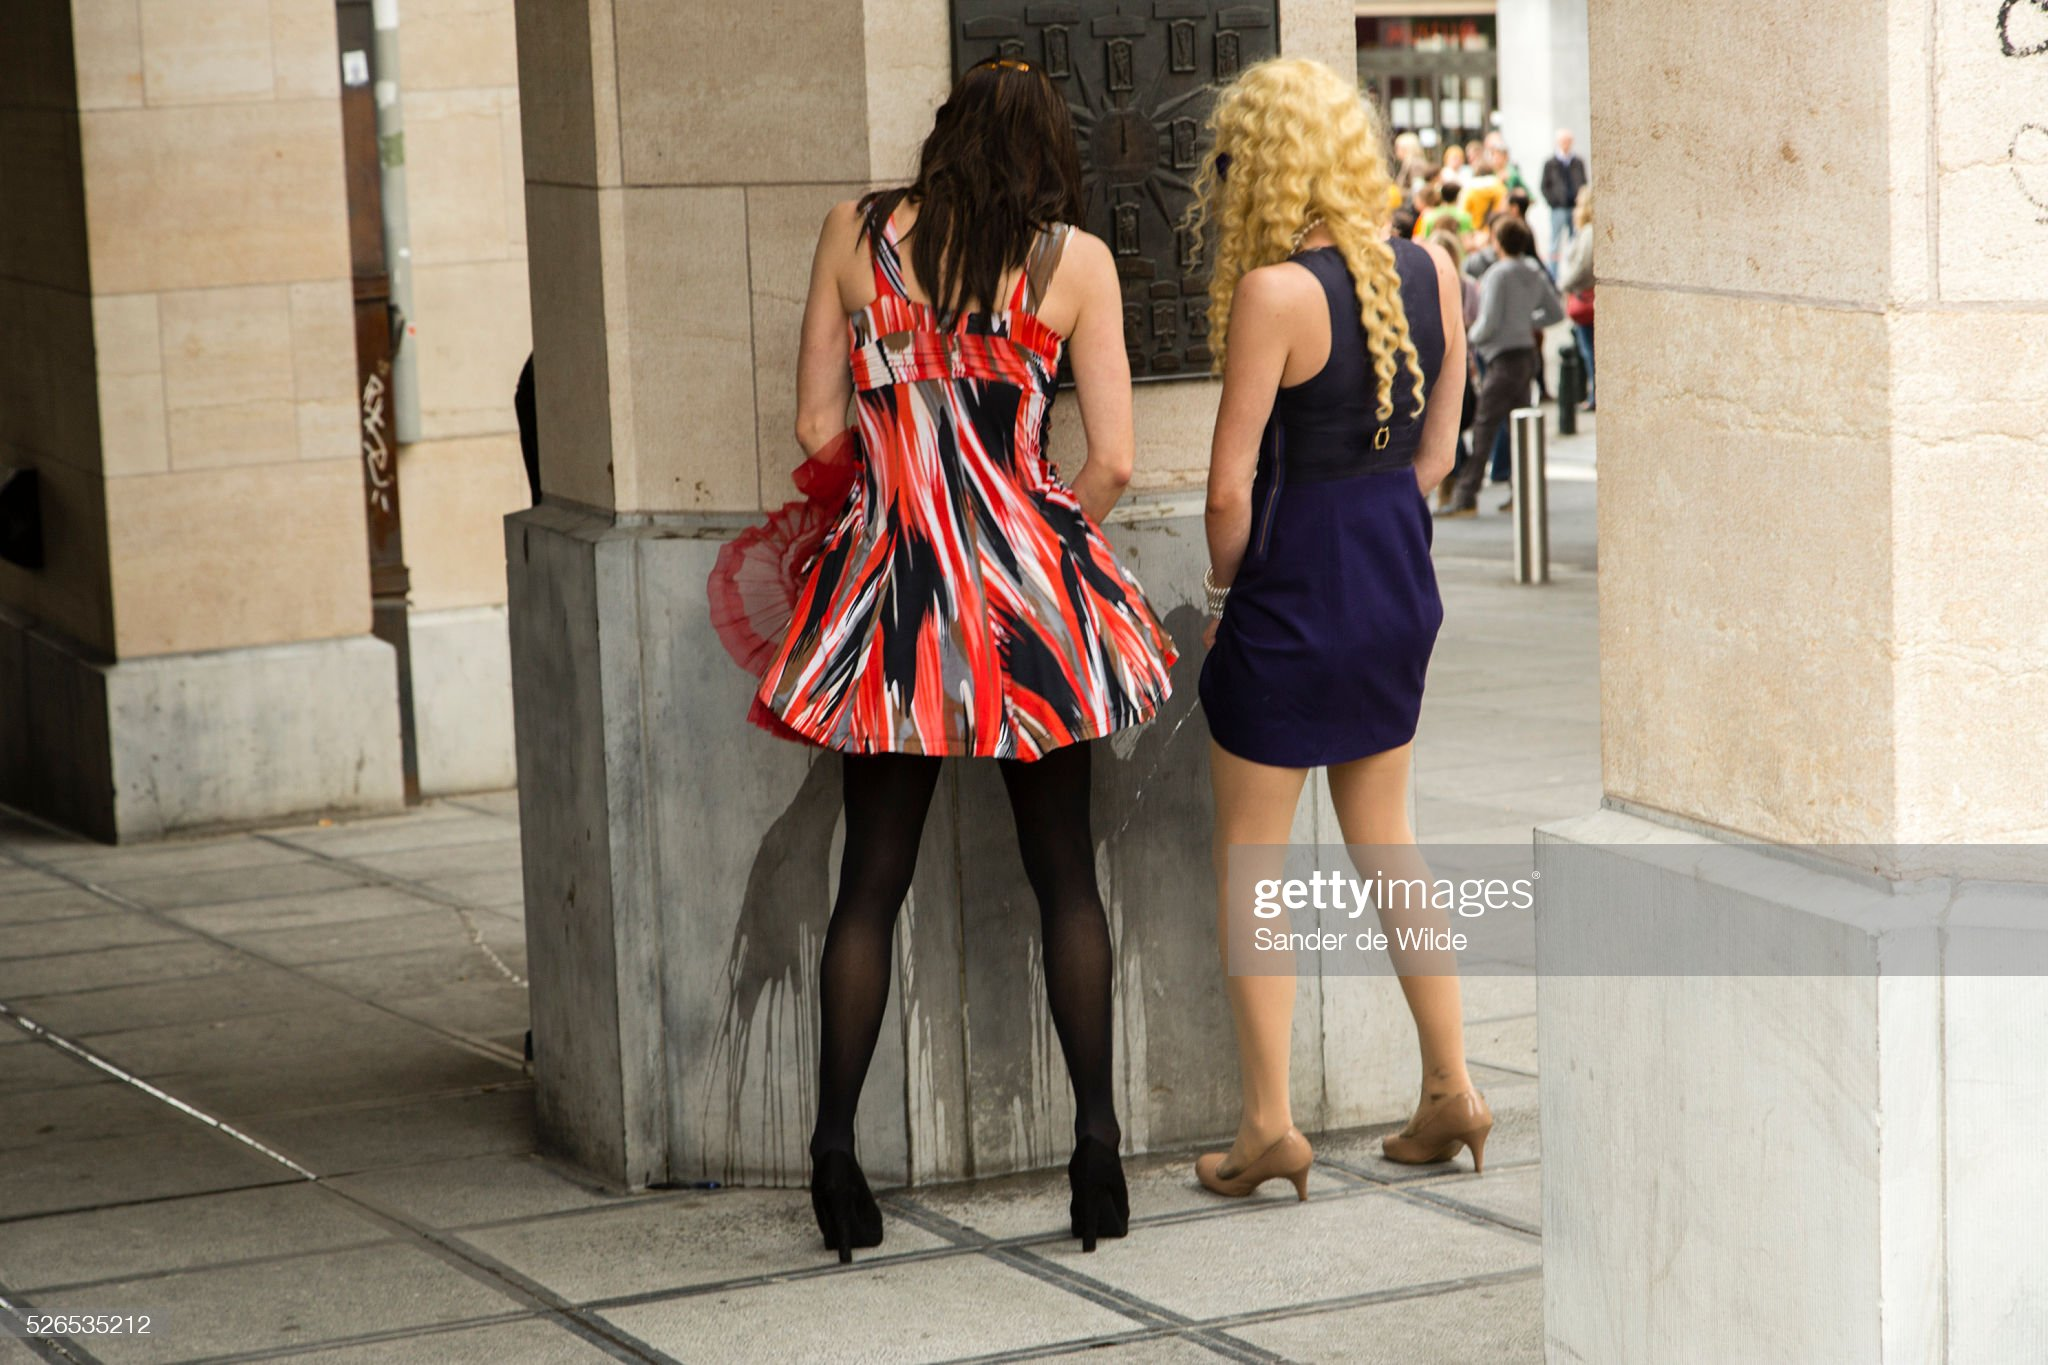 img https://media.gettyimages.com/photos/belgium-brussels-19-may-2013-two-gayman-dressed-as-women-pee-against-picture-id526535212?s=2048x2048 /img